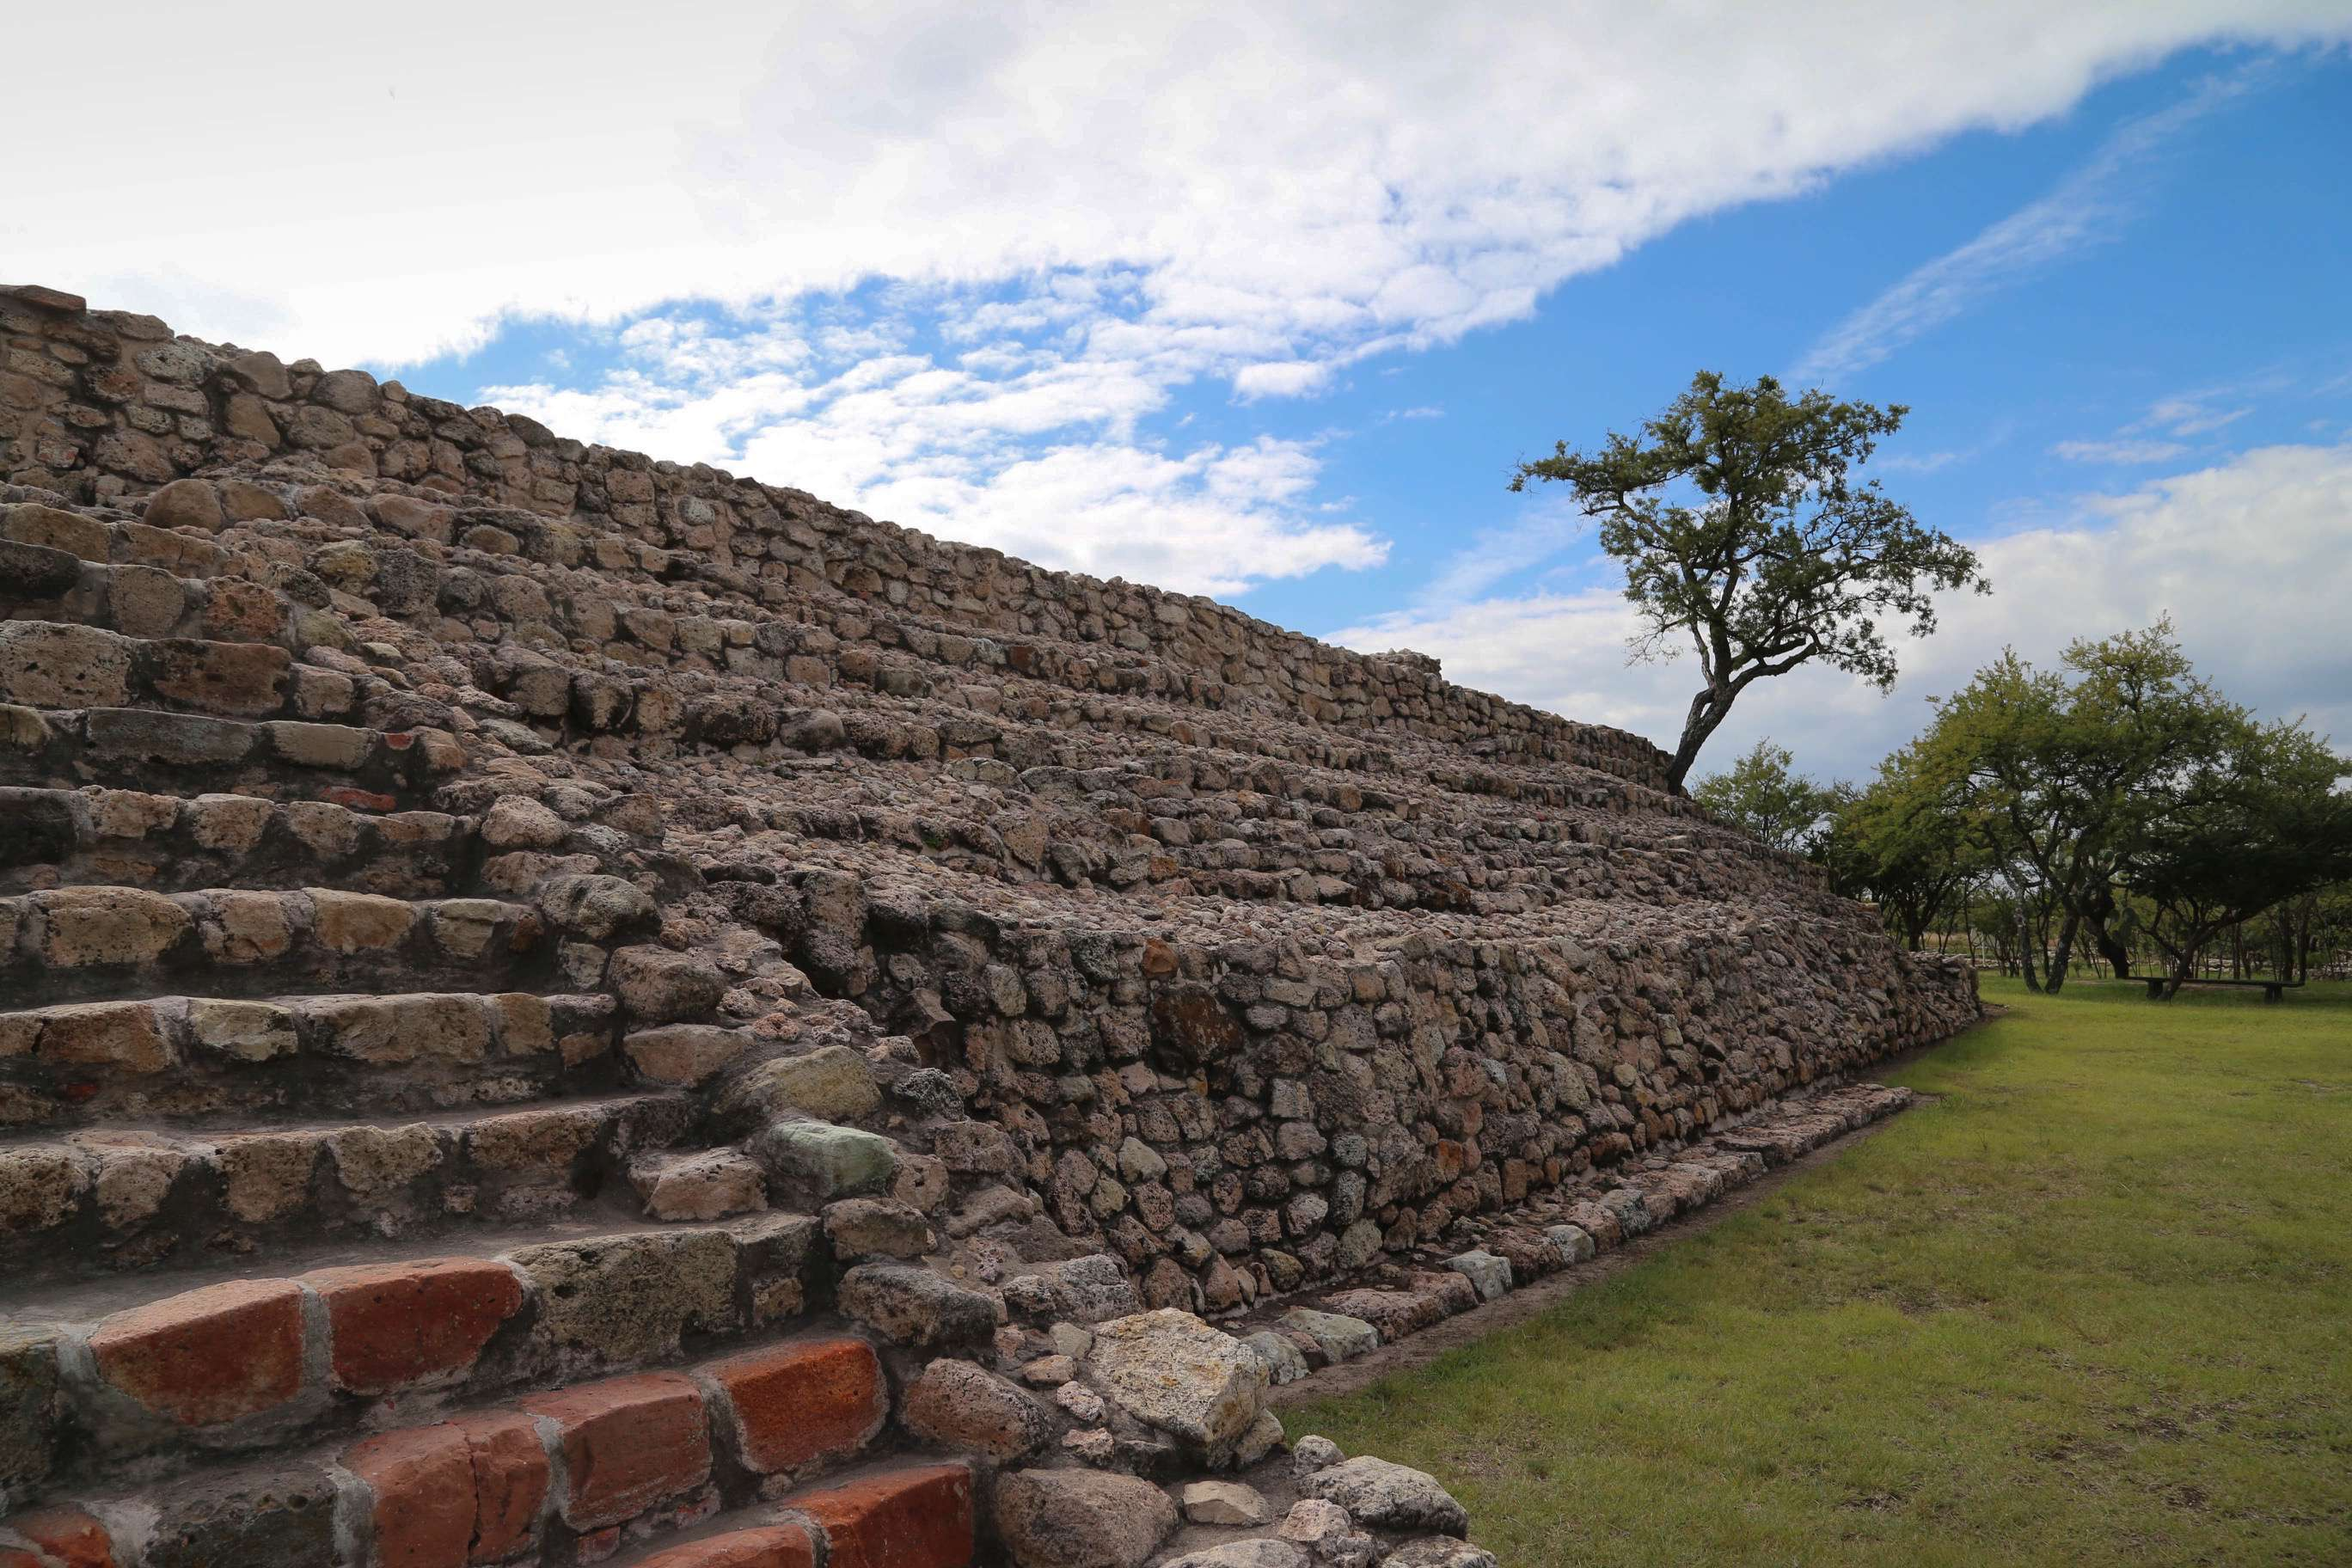 The steps up the pyramid are both steep and narrow, and visitors need to climb carefully.